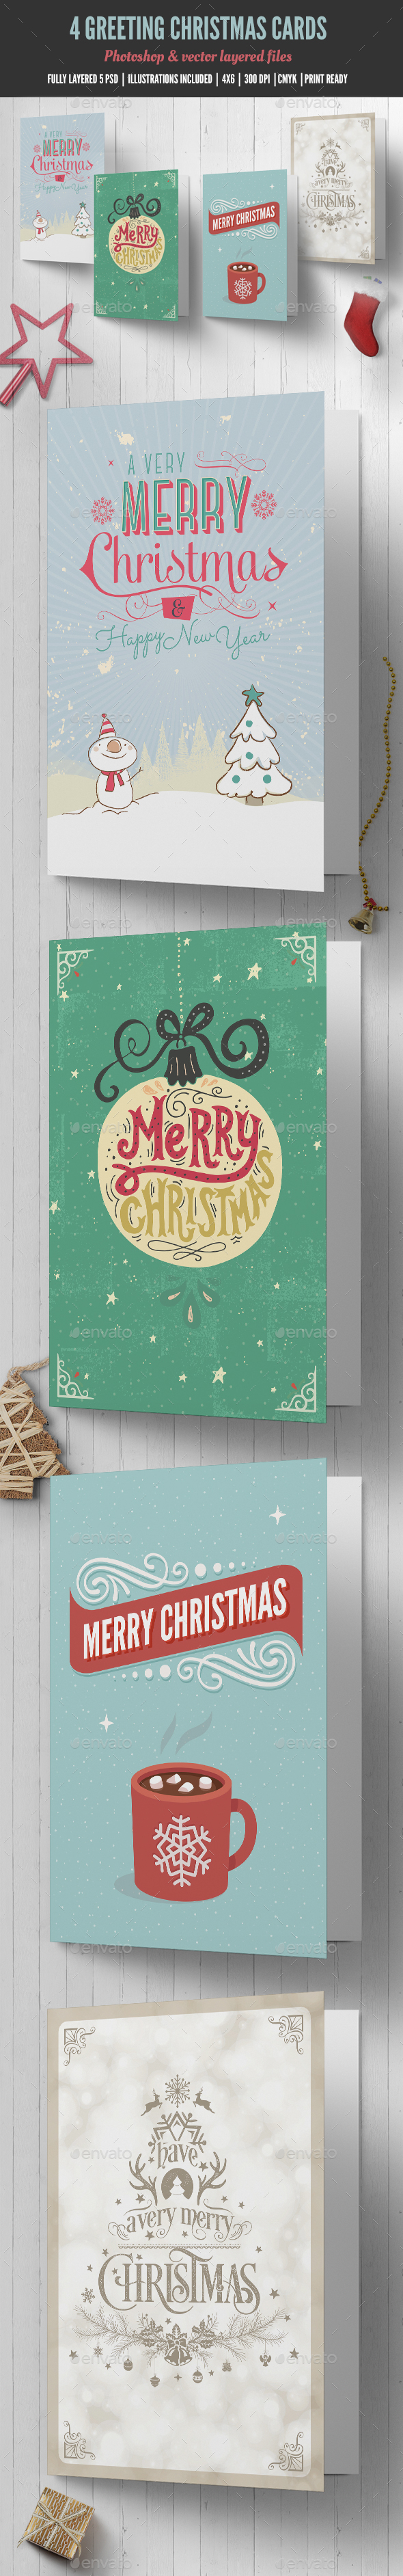 Christmas Card By Madridnyc Graphicriver